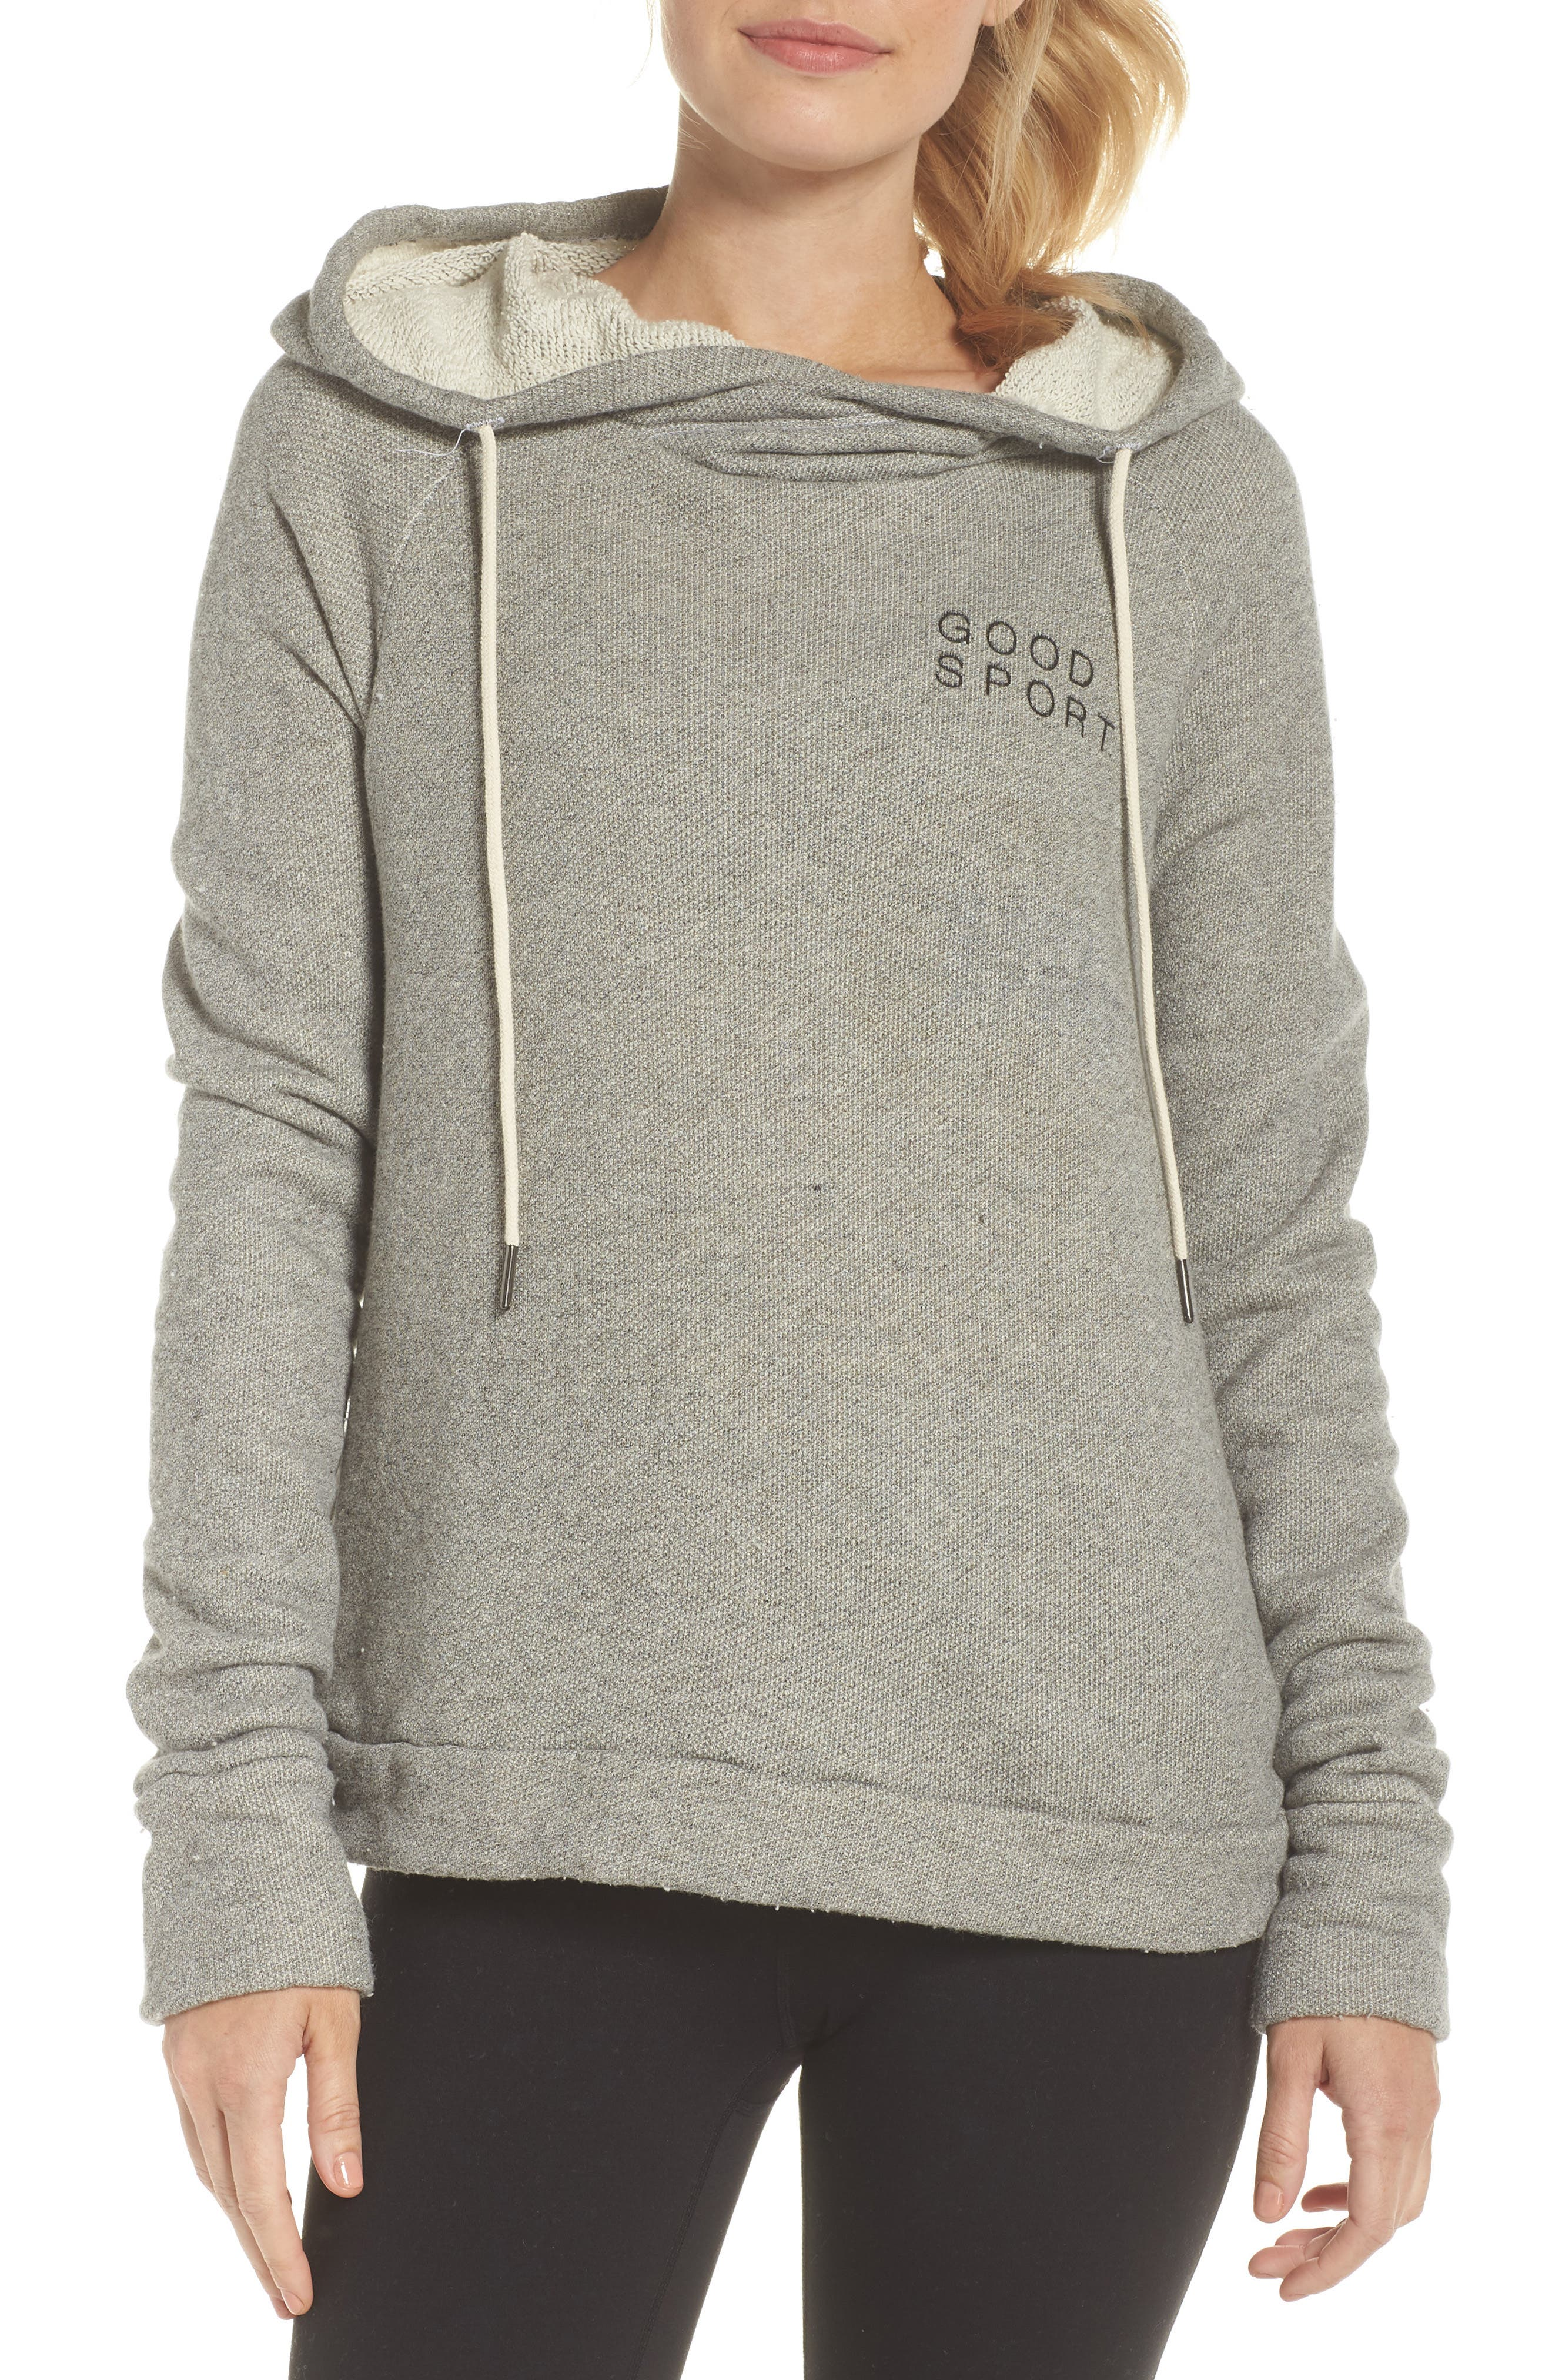 Dominic Good Sport Hoodie,                             Main thumbnail 1, color,                             HEATHER